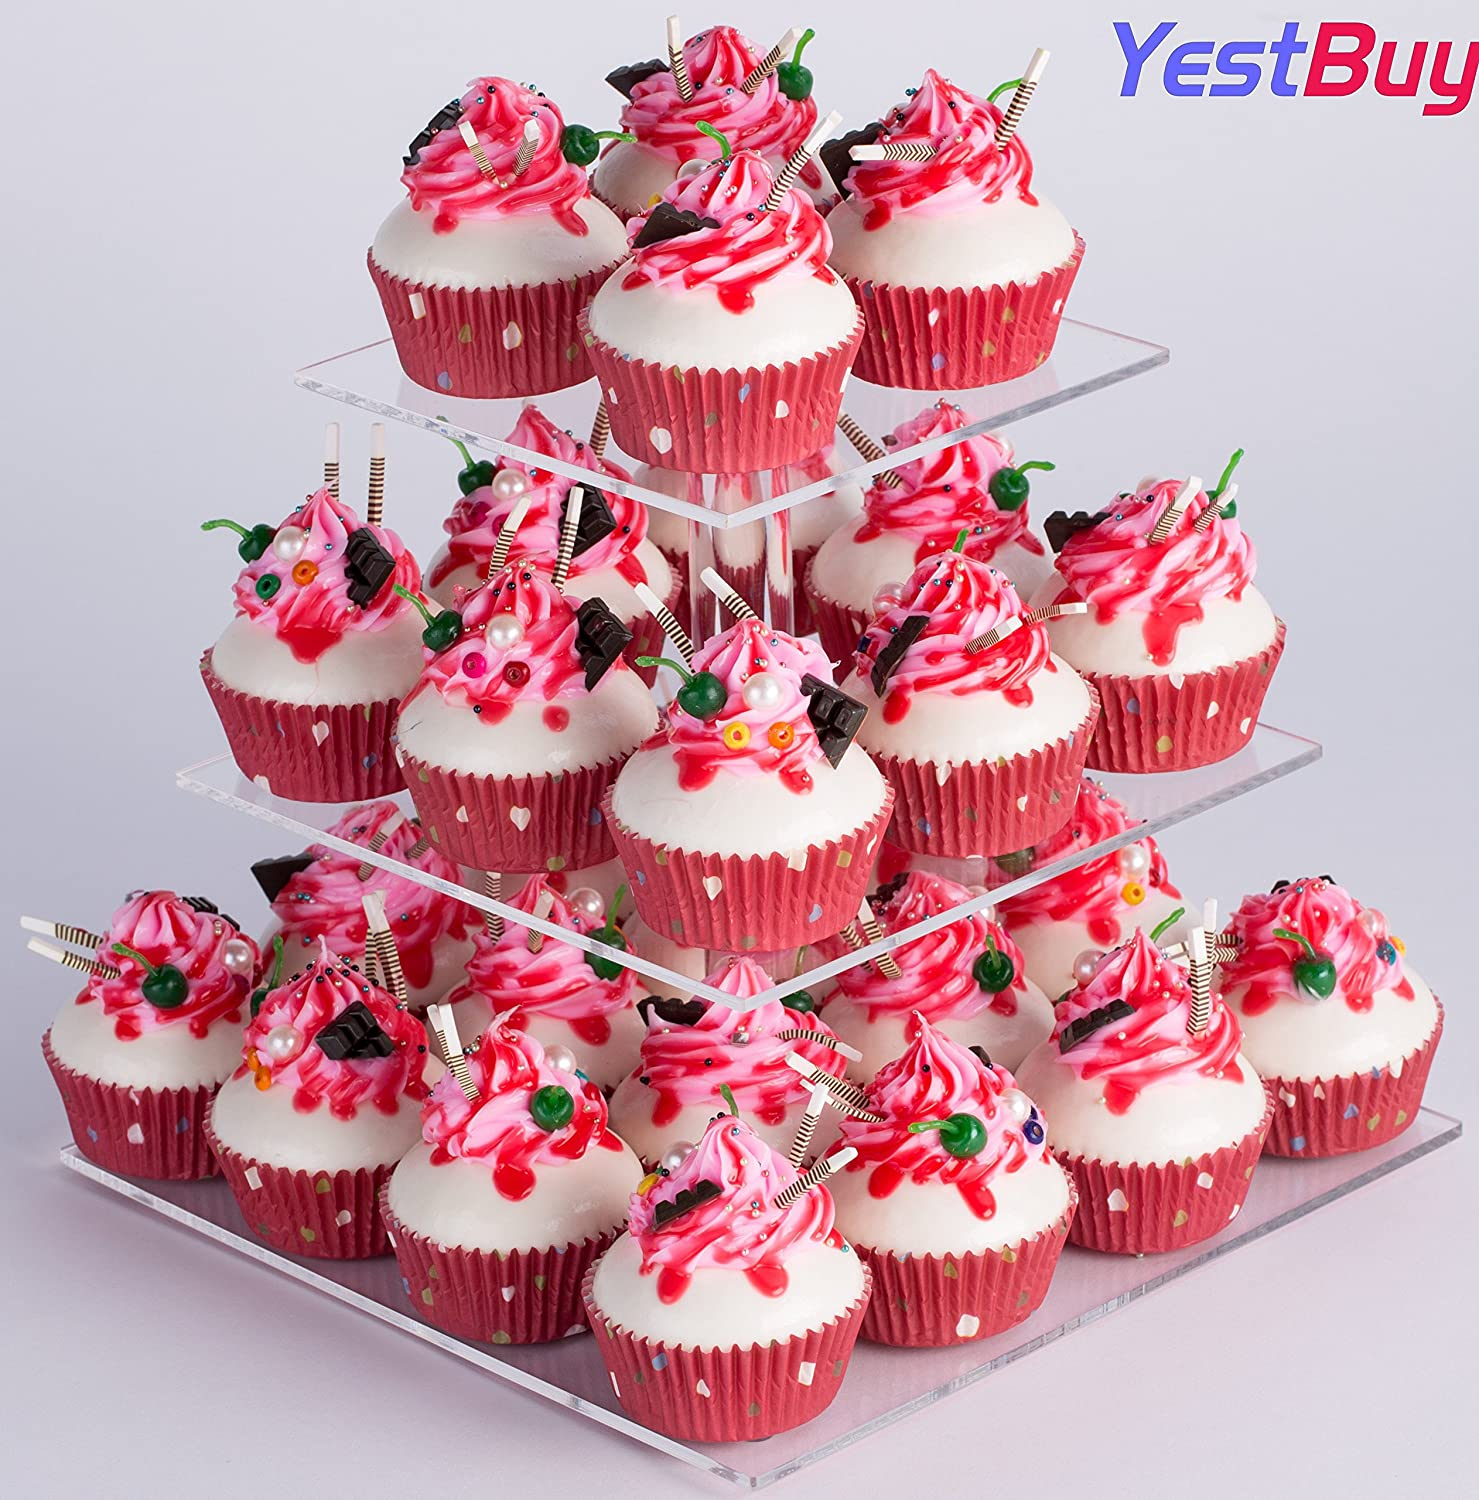 Amazon.com | YestBuy 3 Tier Clear Square Acrylic Tree Cupcake Tower ...